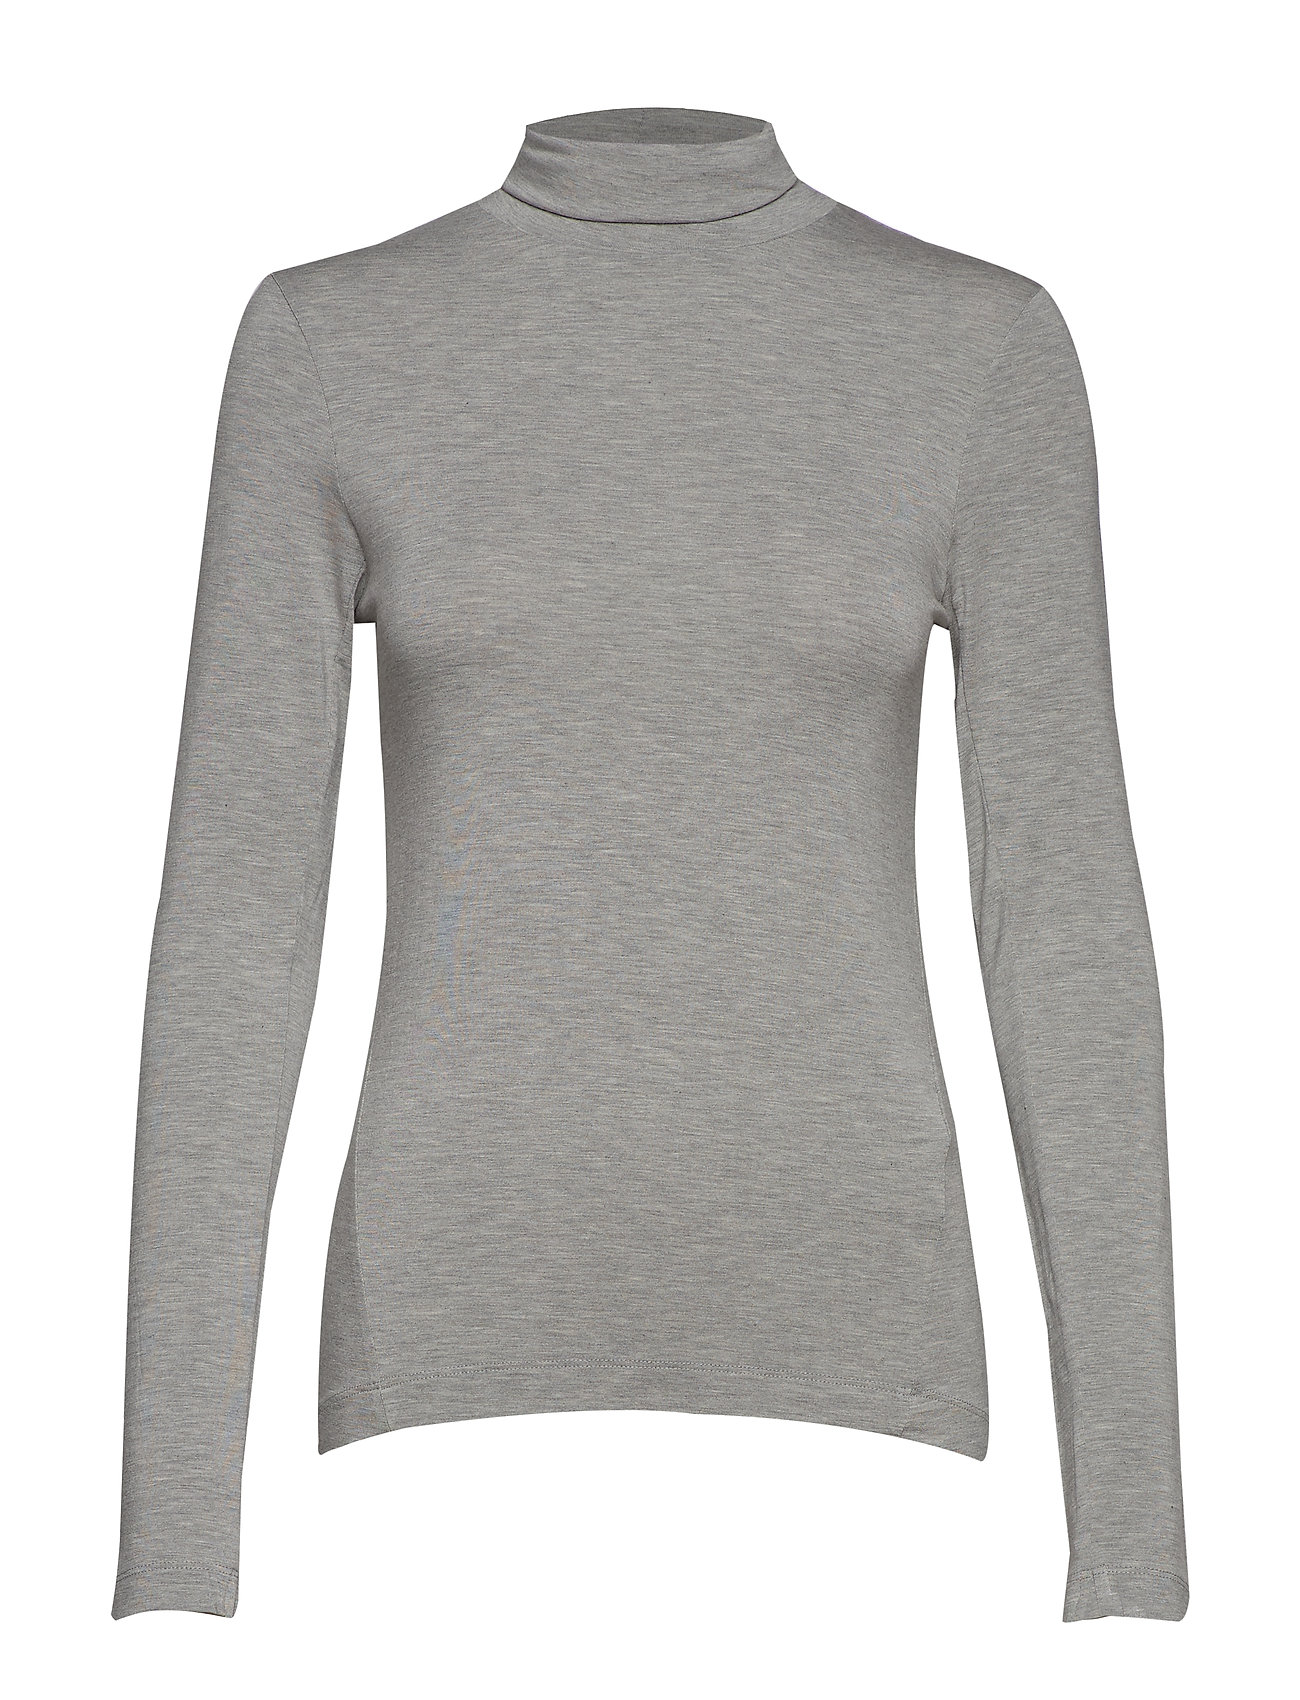 French Connection VENETIA JERSEY SPLIT CUFF TOP - LIGHT GREY MEL